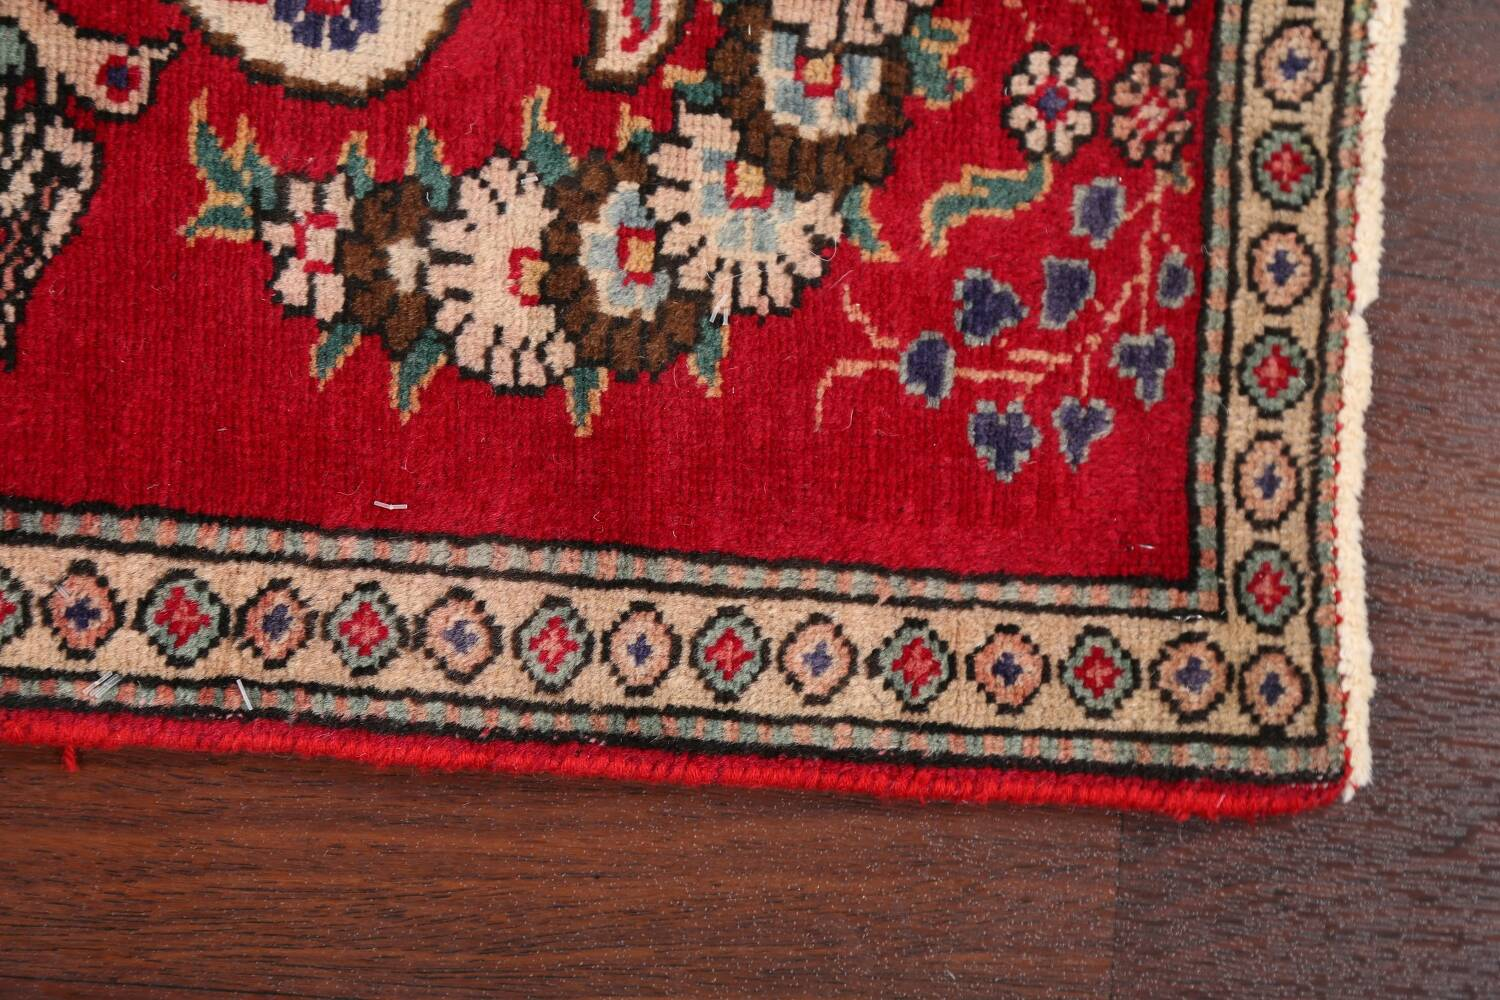 Animal Pictorial Red Tabriz Persian Area Rug 2x2 image 9